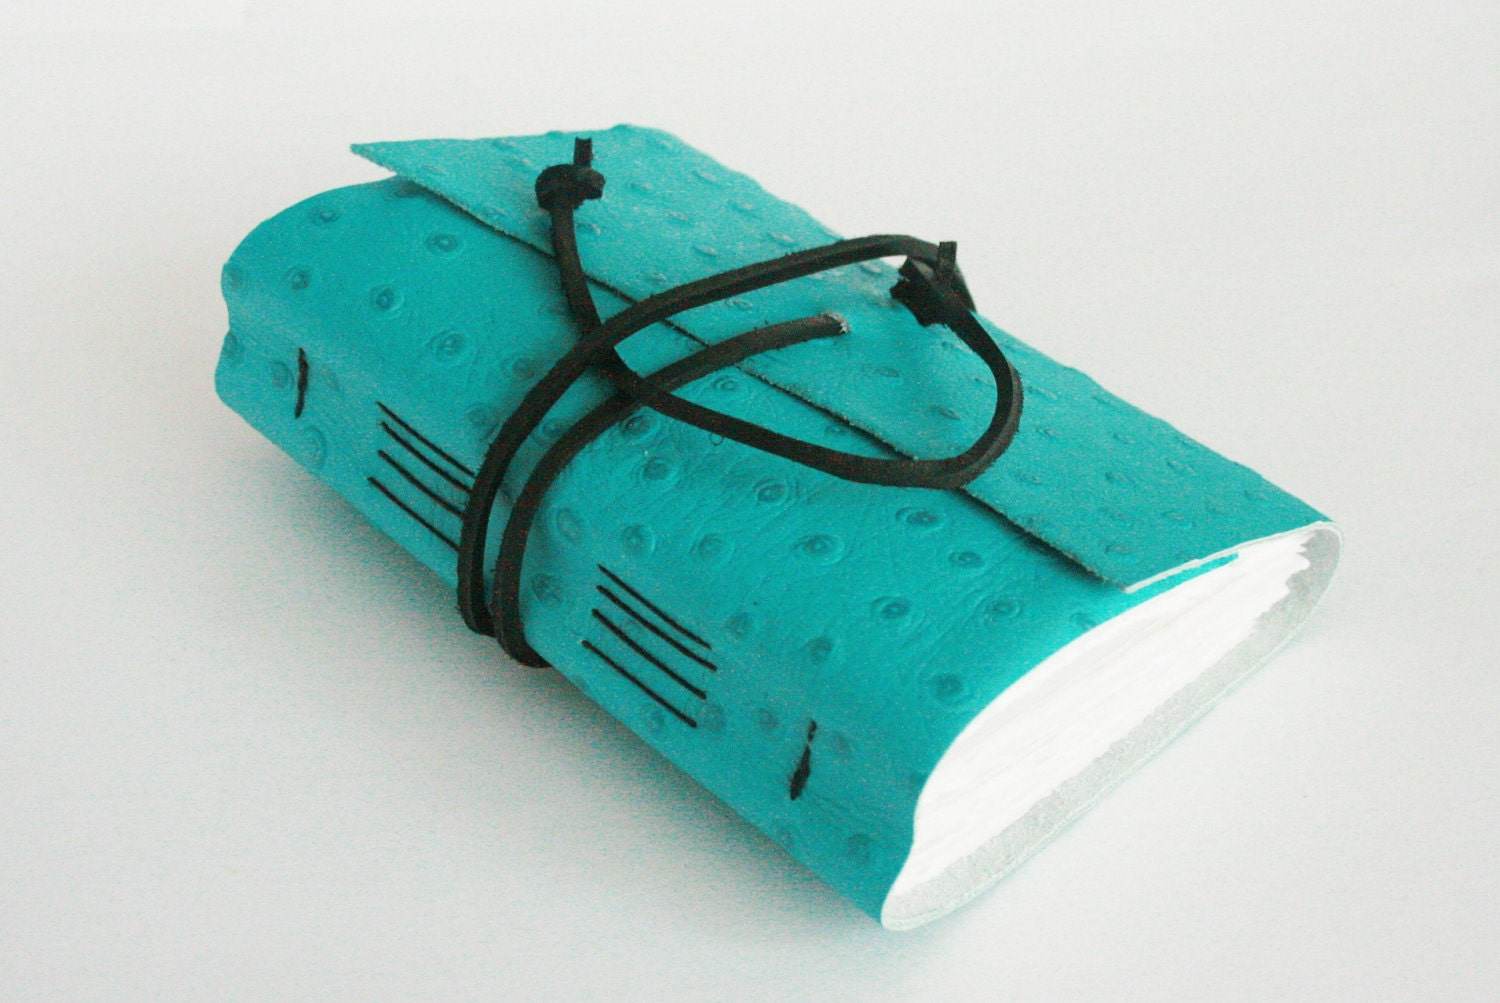 Leather Journal, Embossed Turquoise, Hand-Bound 4.5 x 6 Journal by The Orange Windmill on Etsy